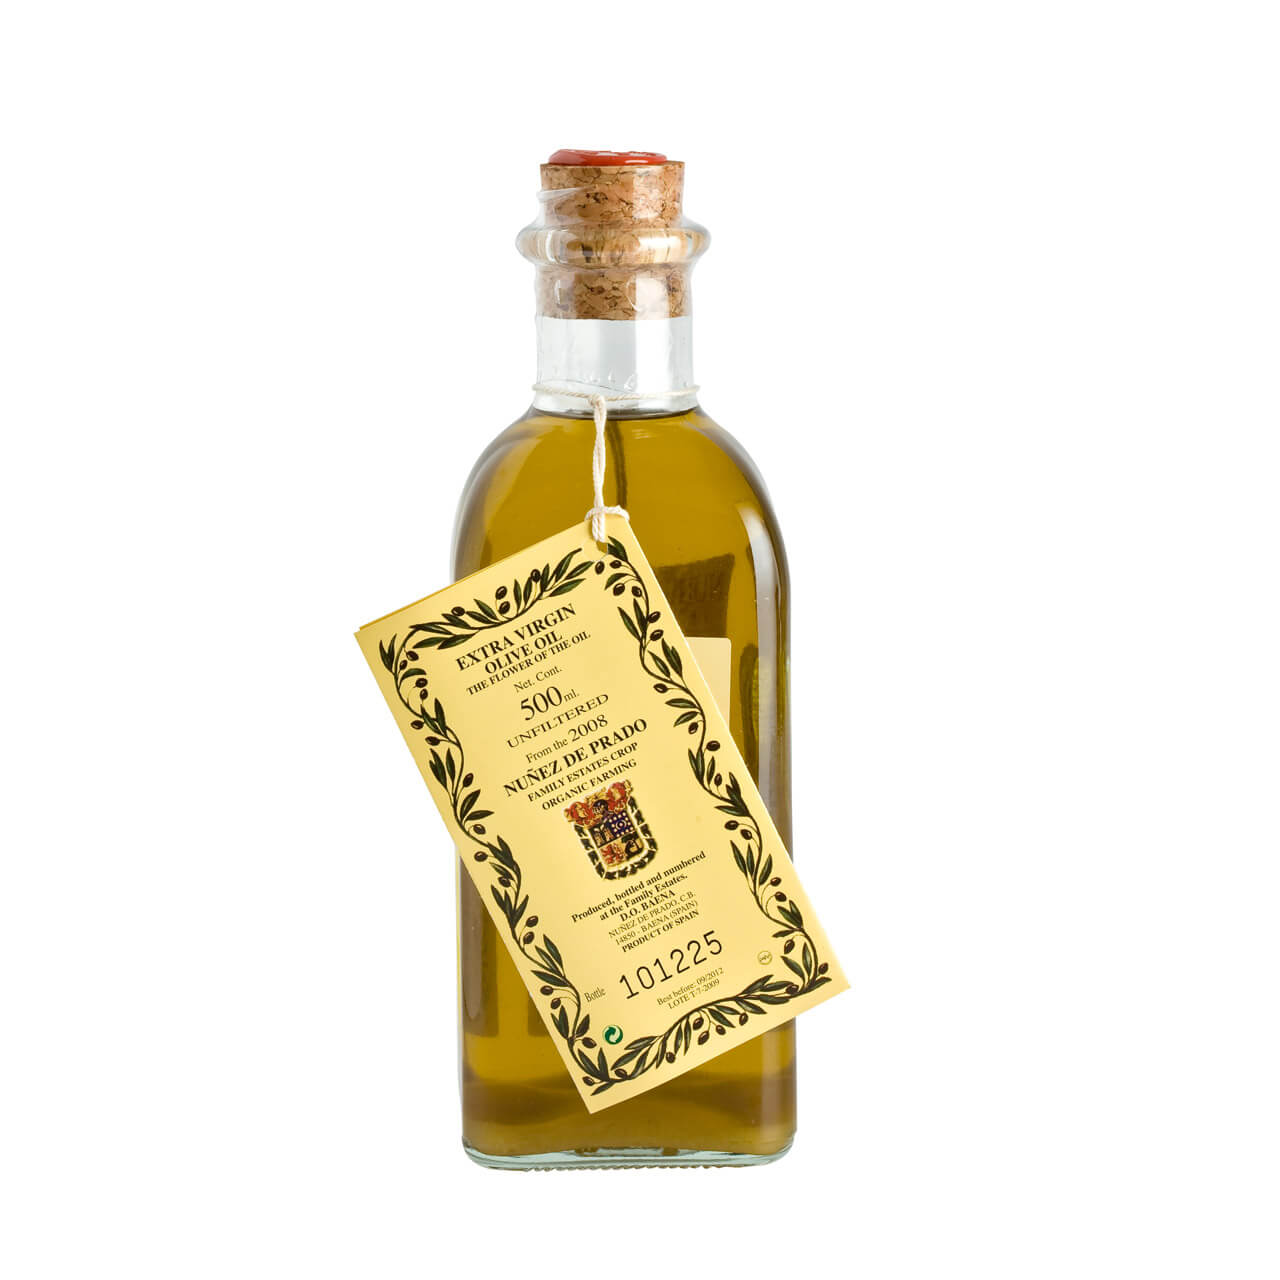 Nunez de Prado Unfiltered Extra Virgin Olive Oil 50cl